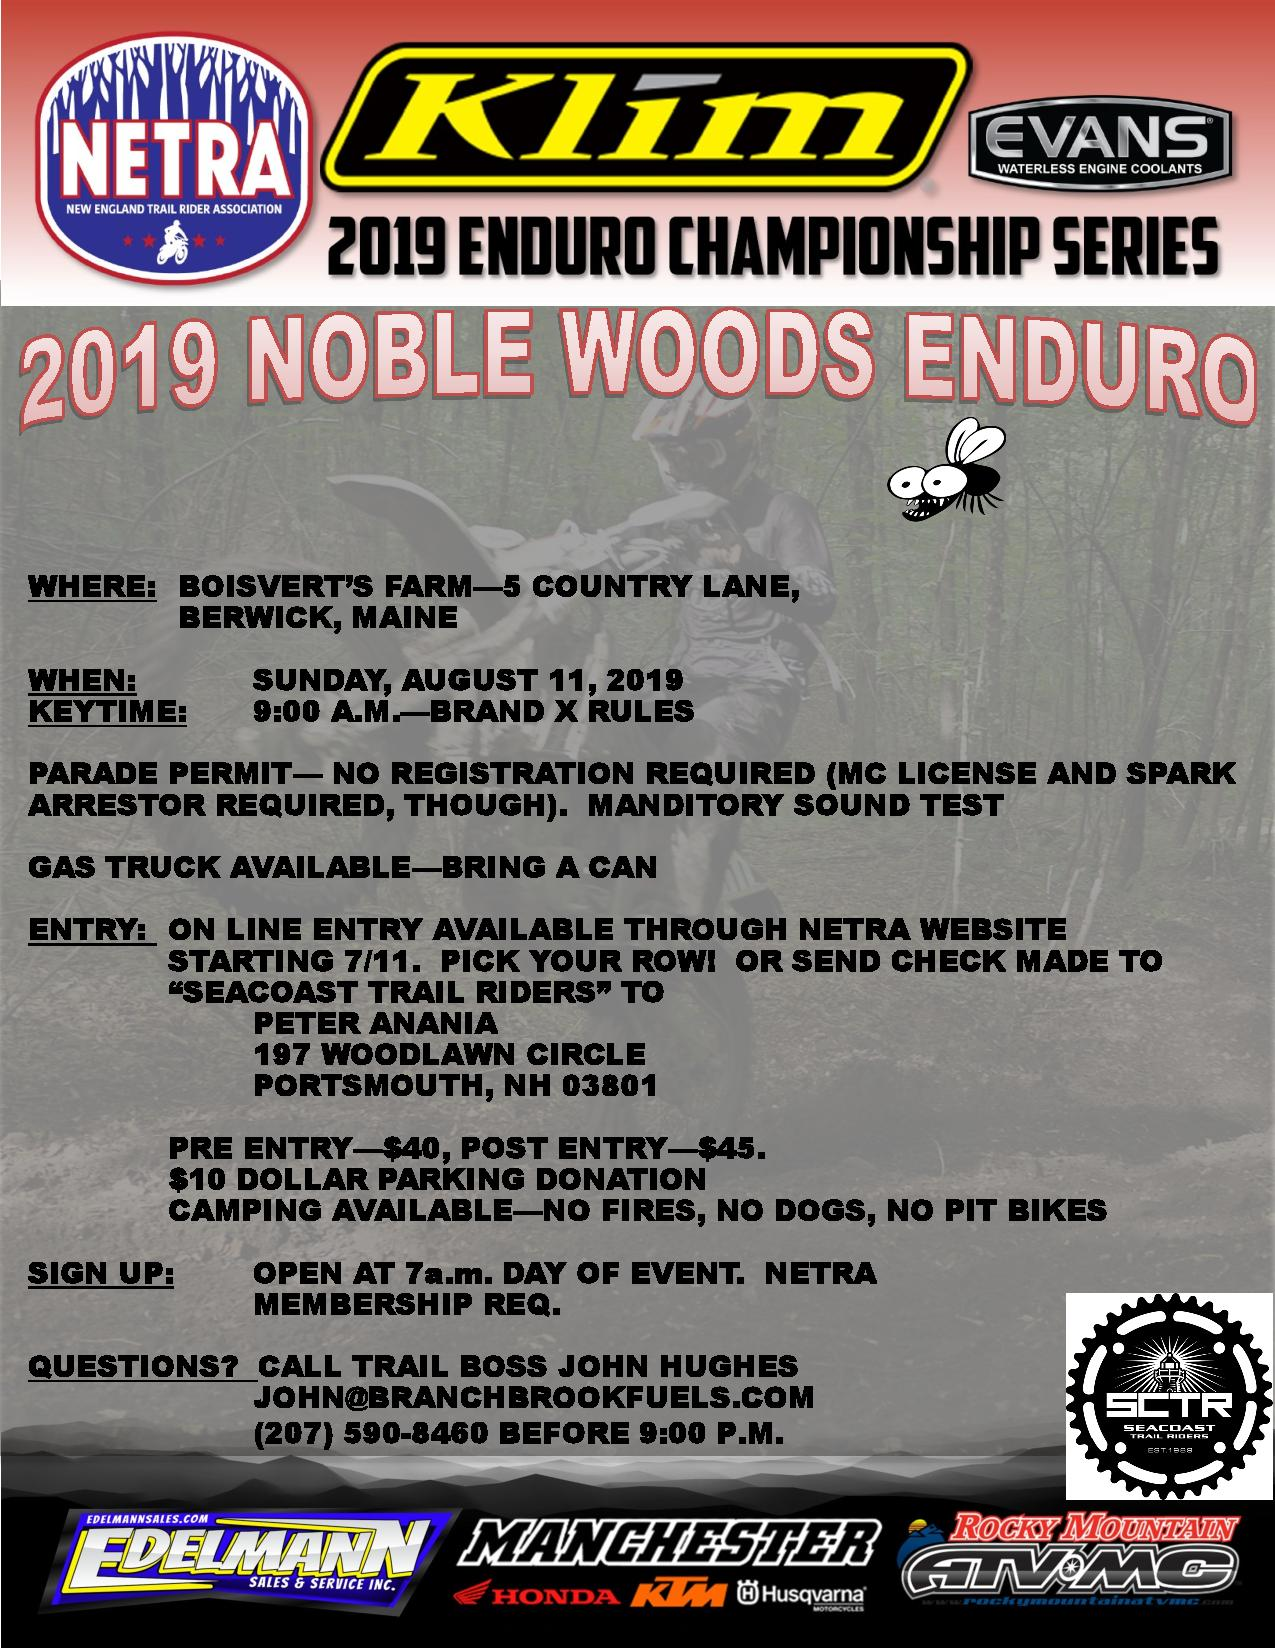 isde – New England Trail Rider Association